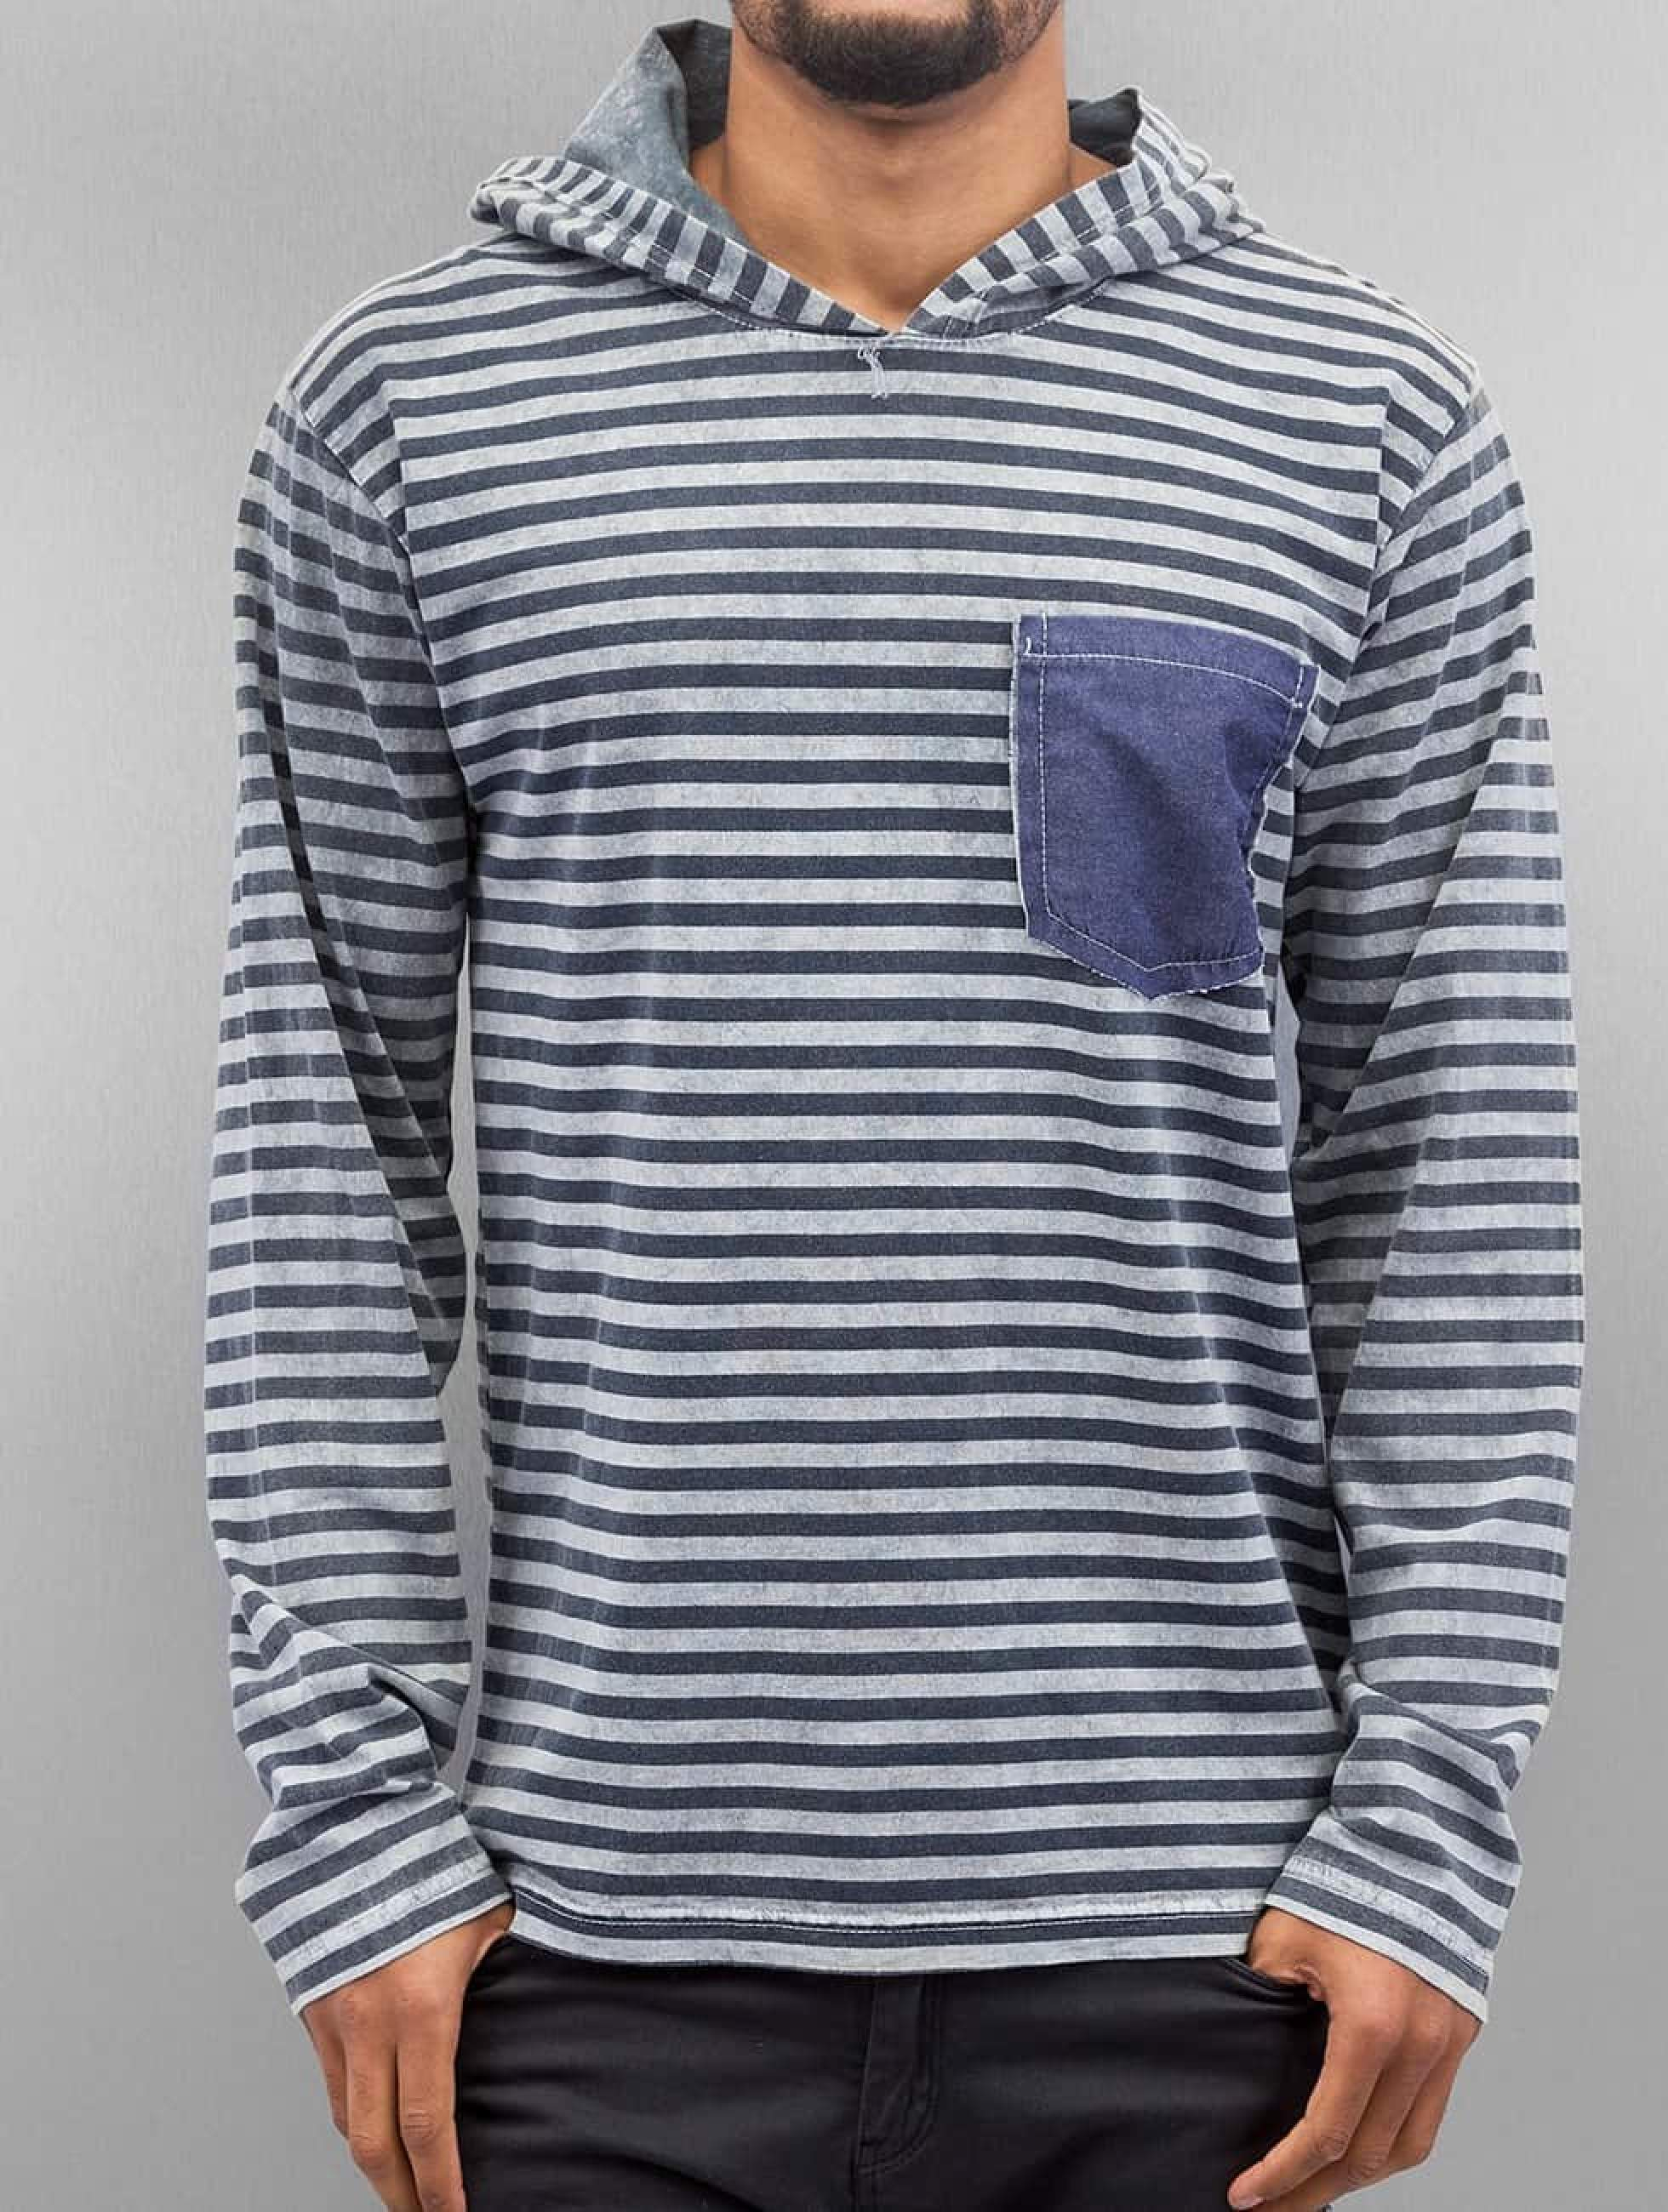 Just Rhyse / Hoodie Stripes in grey S